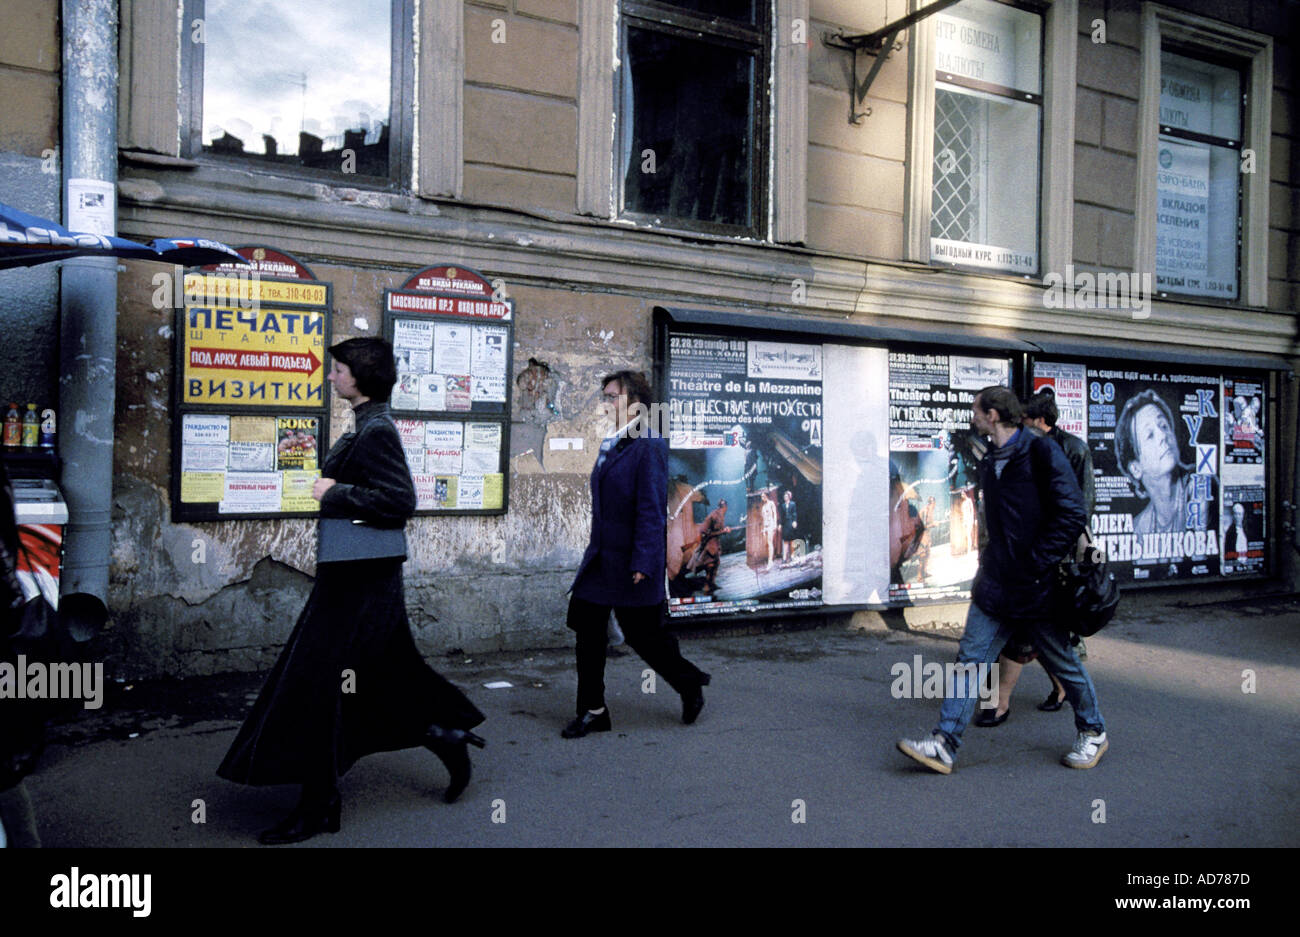 RUSSIA SAINT PETERSBURG PASSERS BY AD POSTERS AT WALL BEHIND - Stock Image